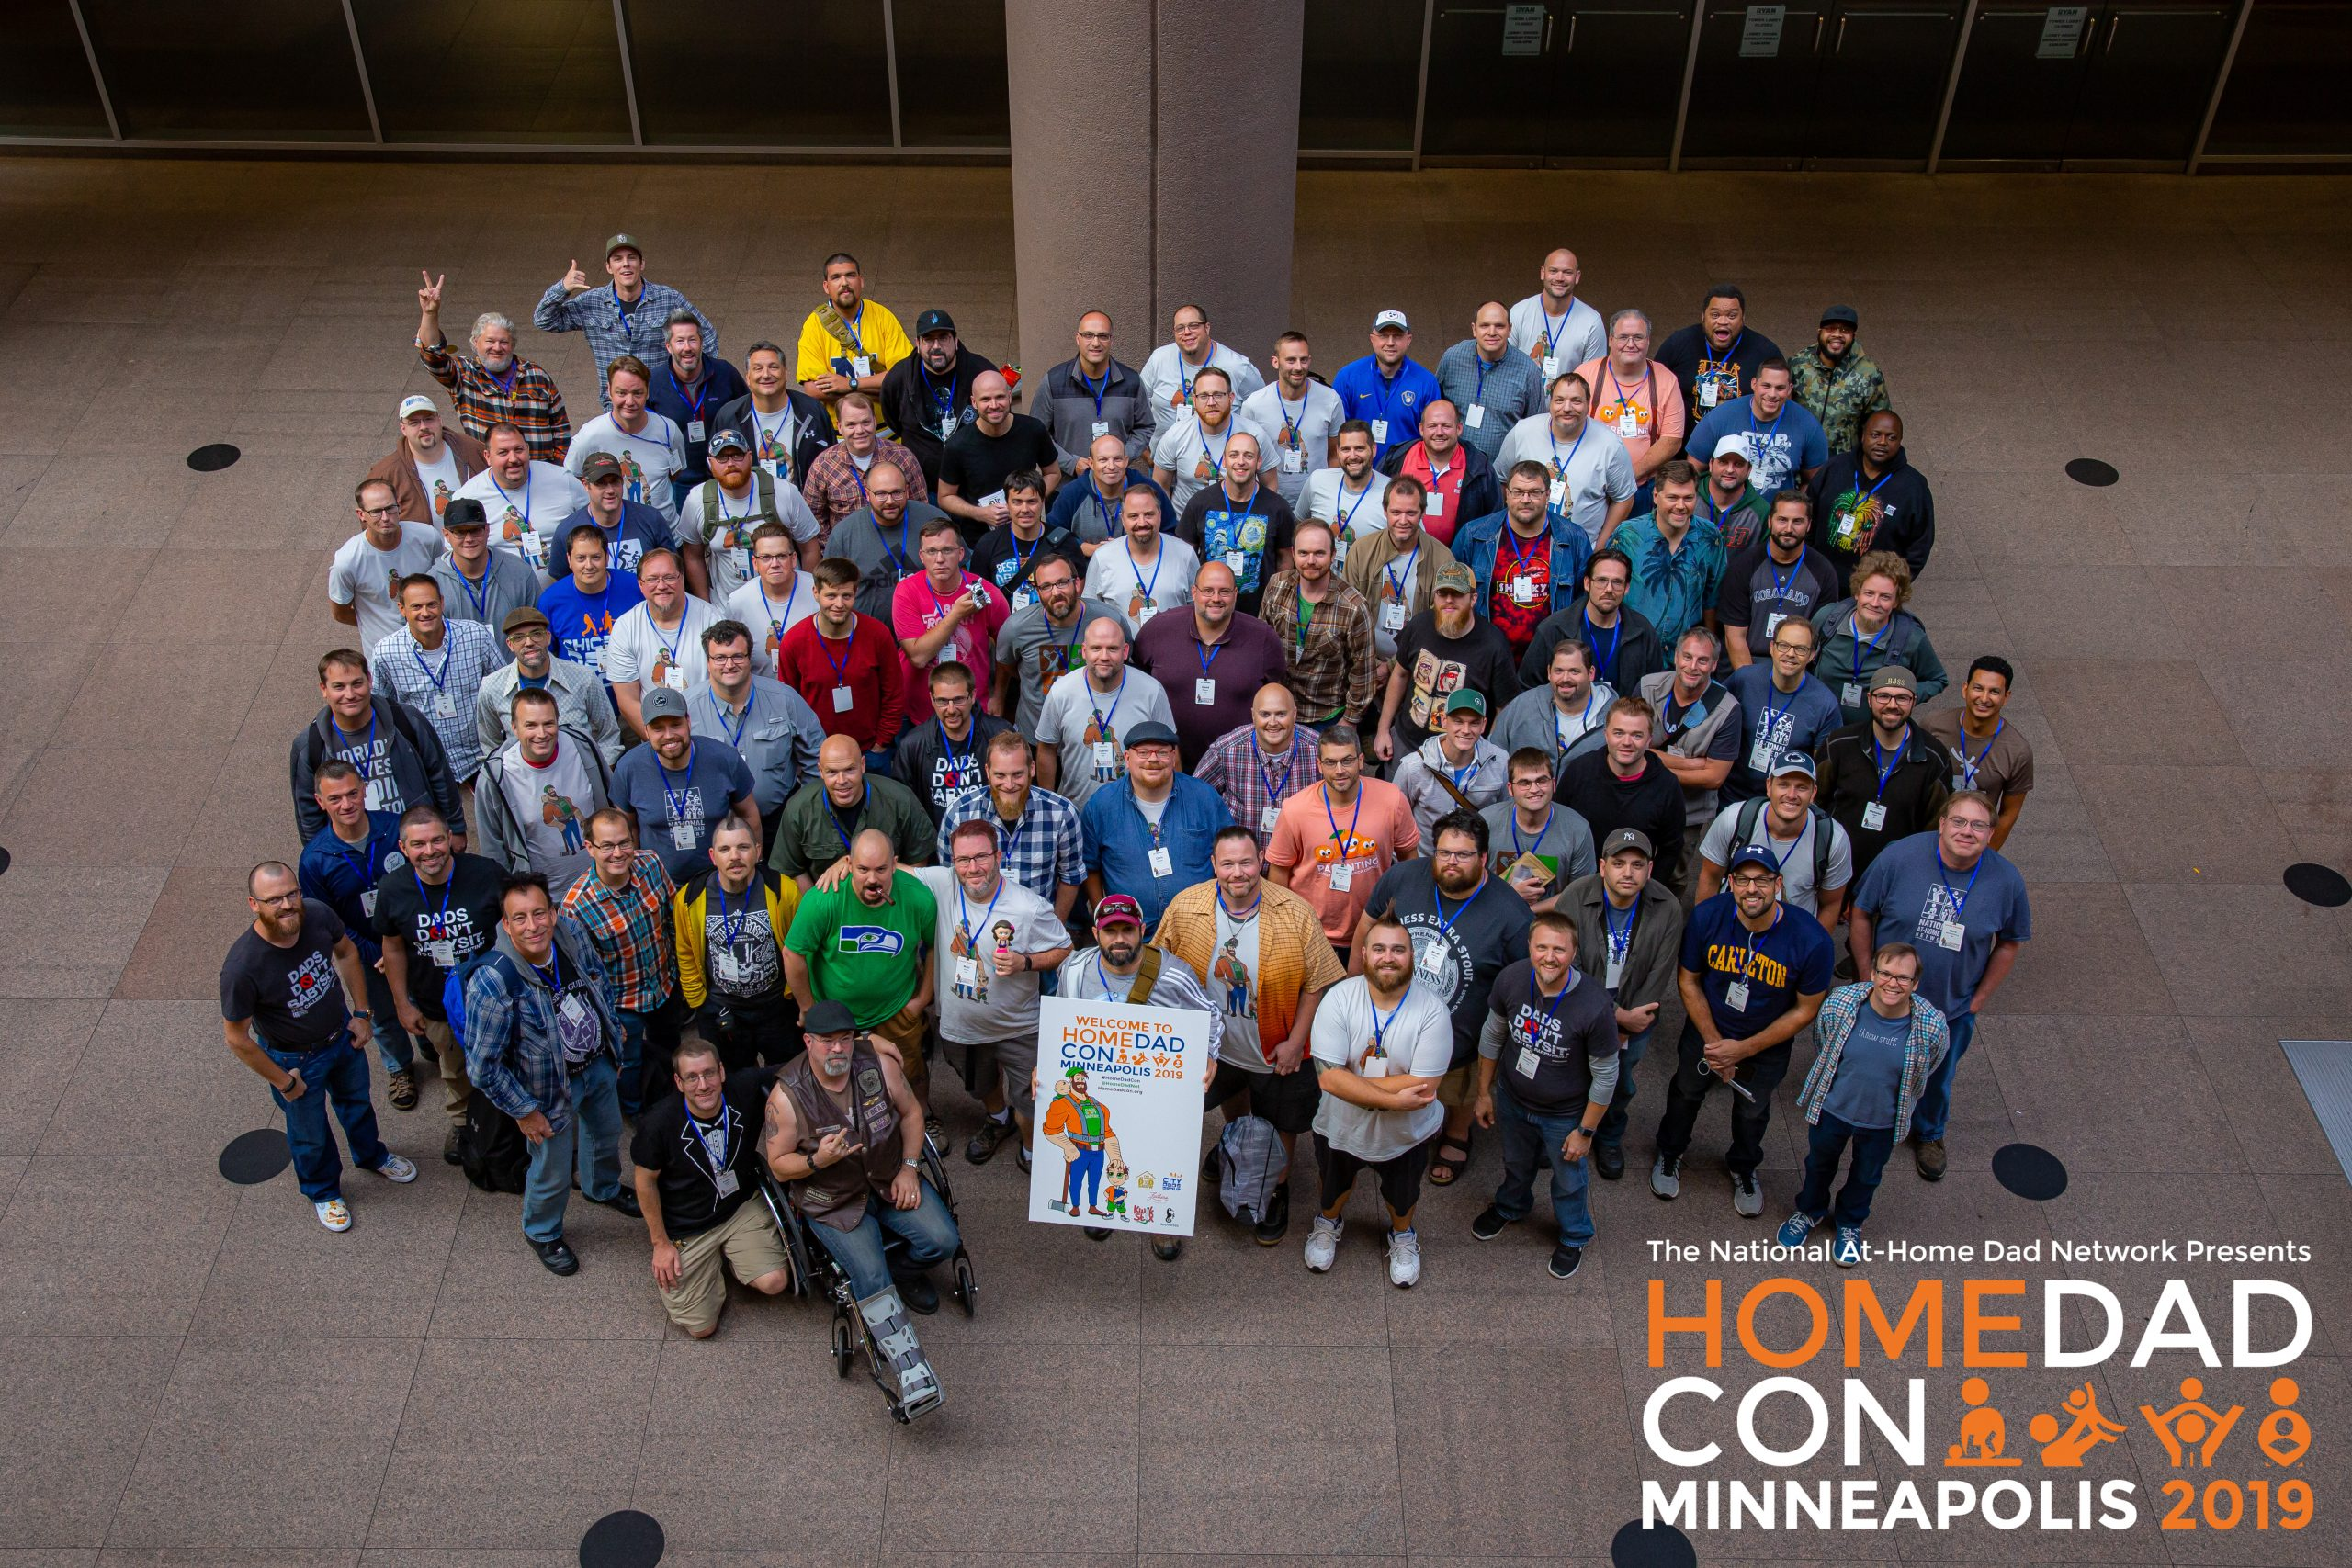 HomeDadCon Minneapolis 2019